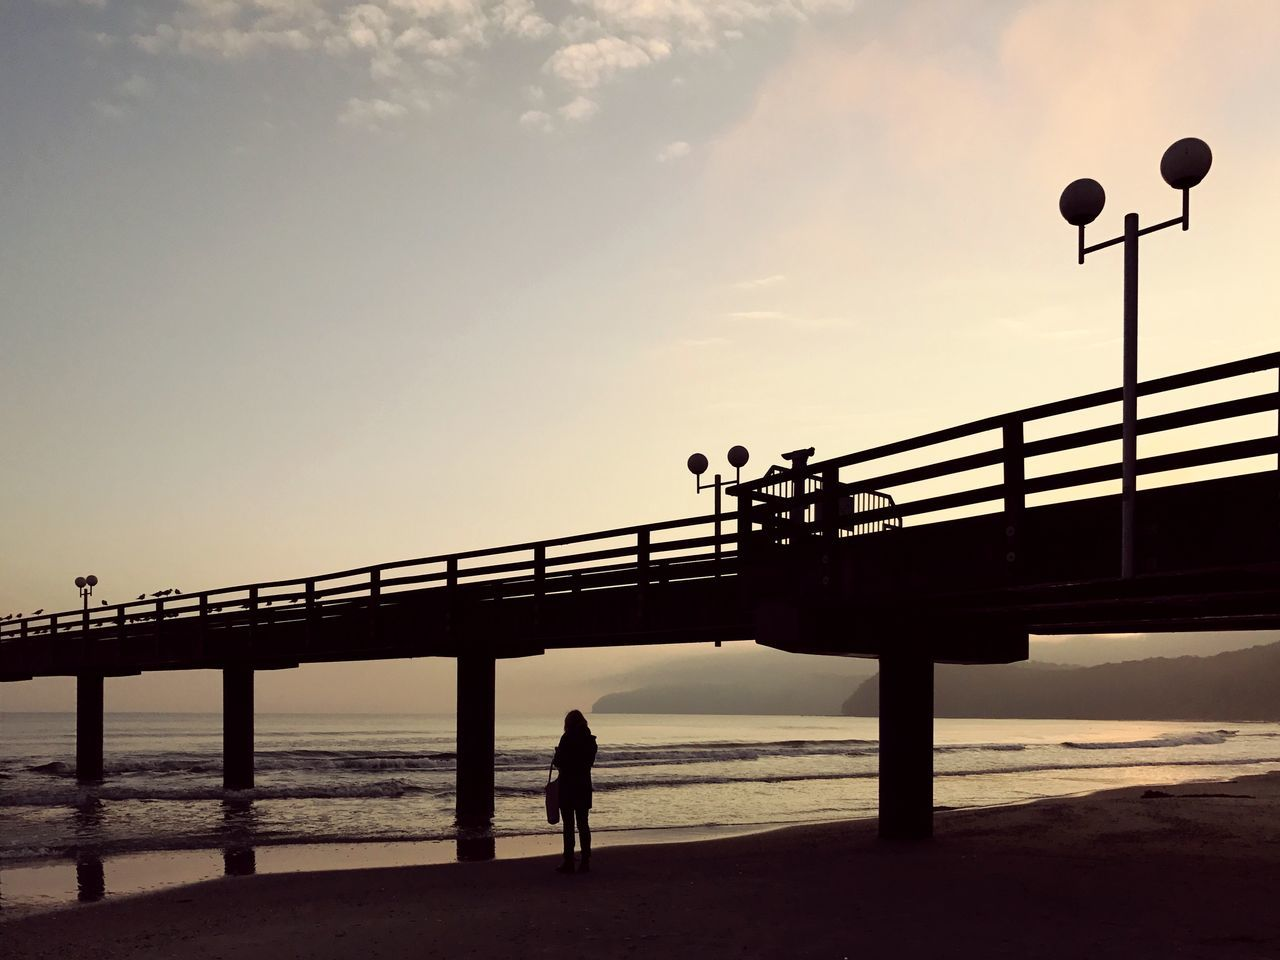 My Year My View Sky Railing Bridge - Man Made Structure Sea Connection Outdoors Sunset Nature Real People Full Length Men Day Beauty In Nature One Person Water People Silhouette Beach Ostsee Ostseebad Binz EyeEm Best Shots EyeEm Nature Lover Eyeem Market